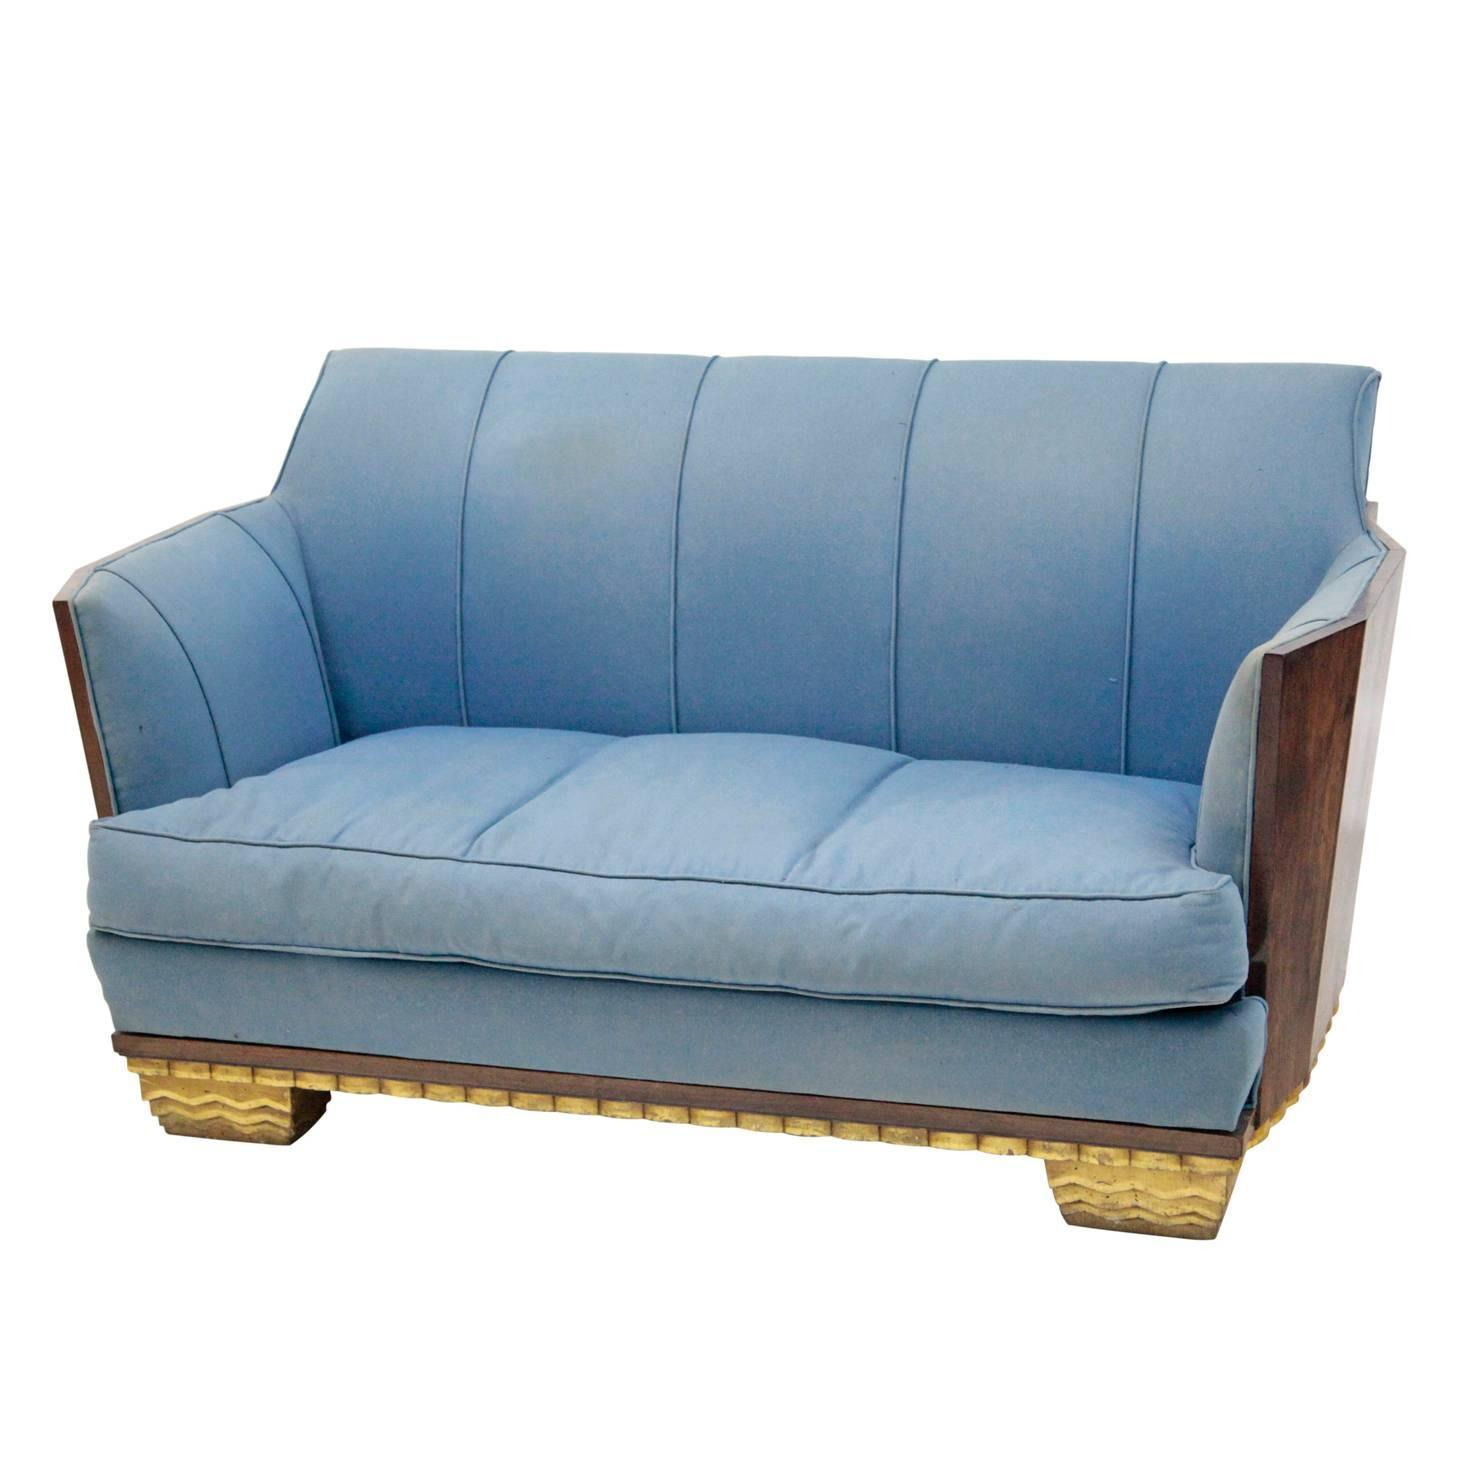 Beautiful Sofas Beautiful French Art Deco Sofa At 1stdibs